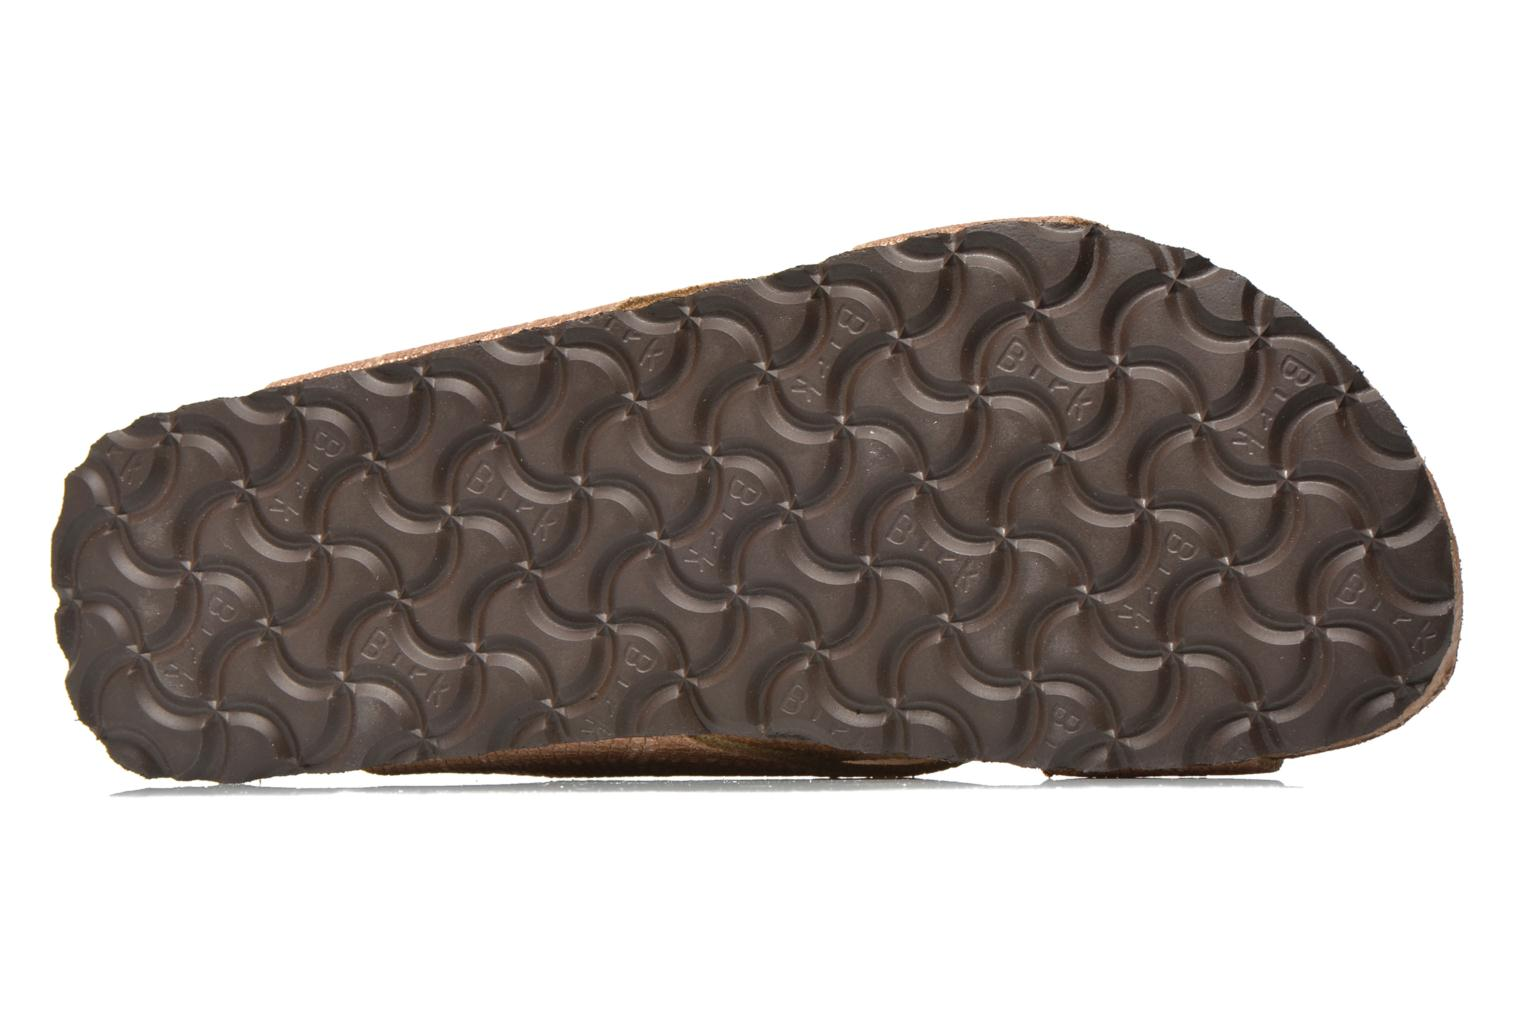 Daytona Cuir Nubuck W Royal Python Brown